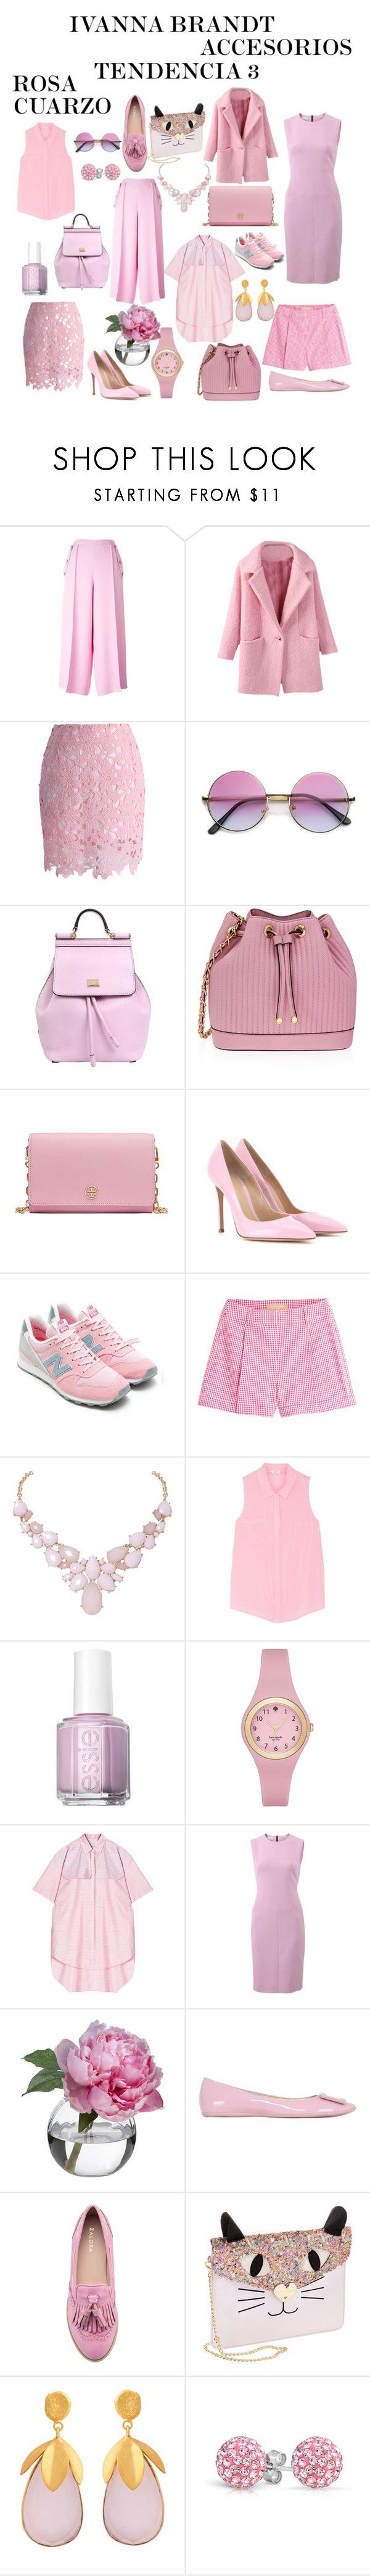 """ROSA CUARZO"" by ivanna16 on Polyvore featuring moda, Emilio Pucci, Chicwish, Dolce&Gabbana, Henri Bendel, Tory Burch, Gianvito Rossi, New Balance, Michael Kors y Humble Chic"